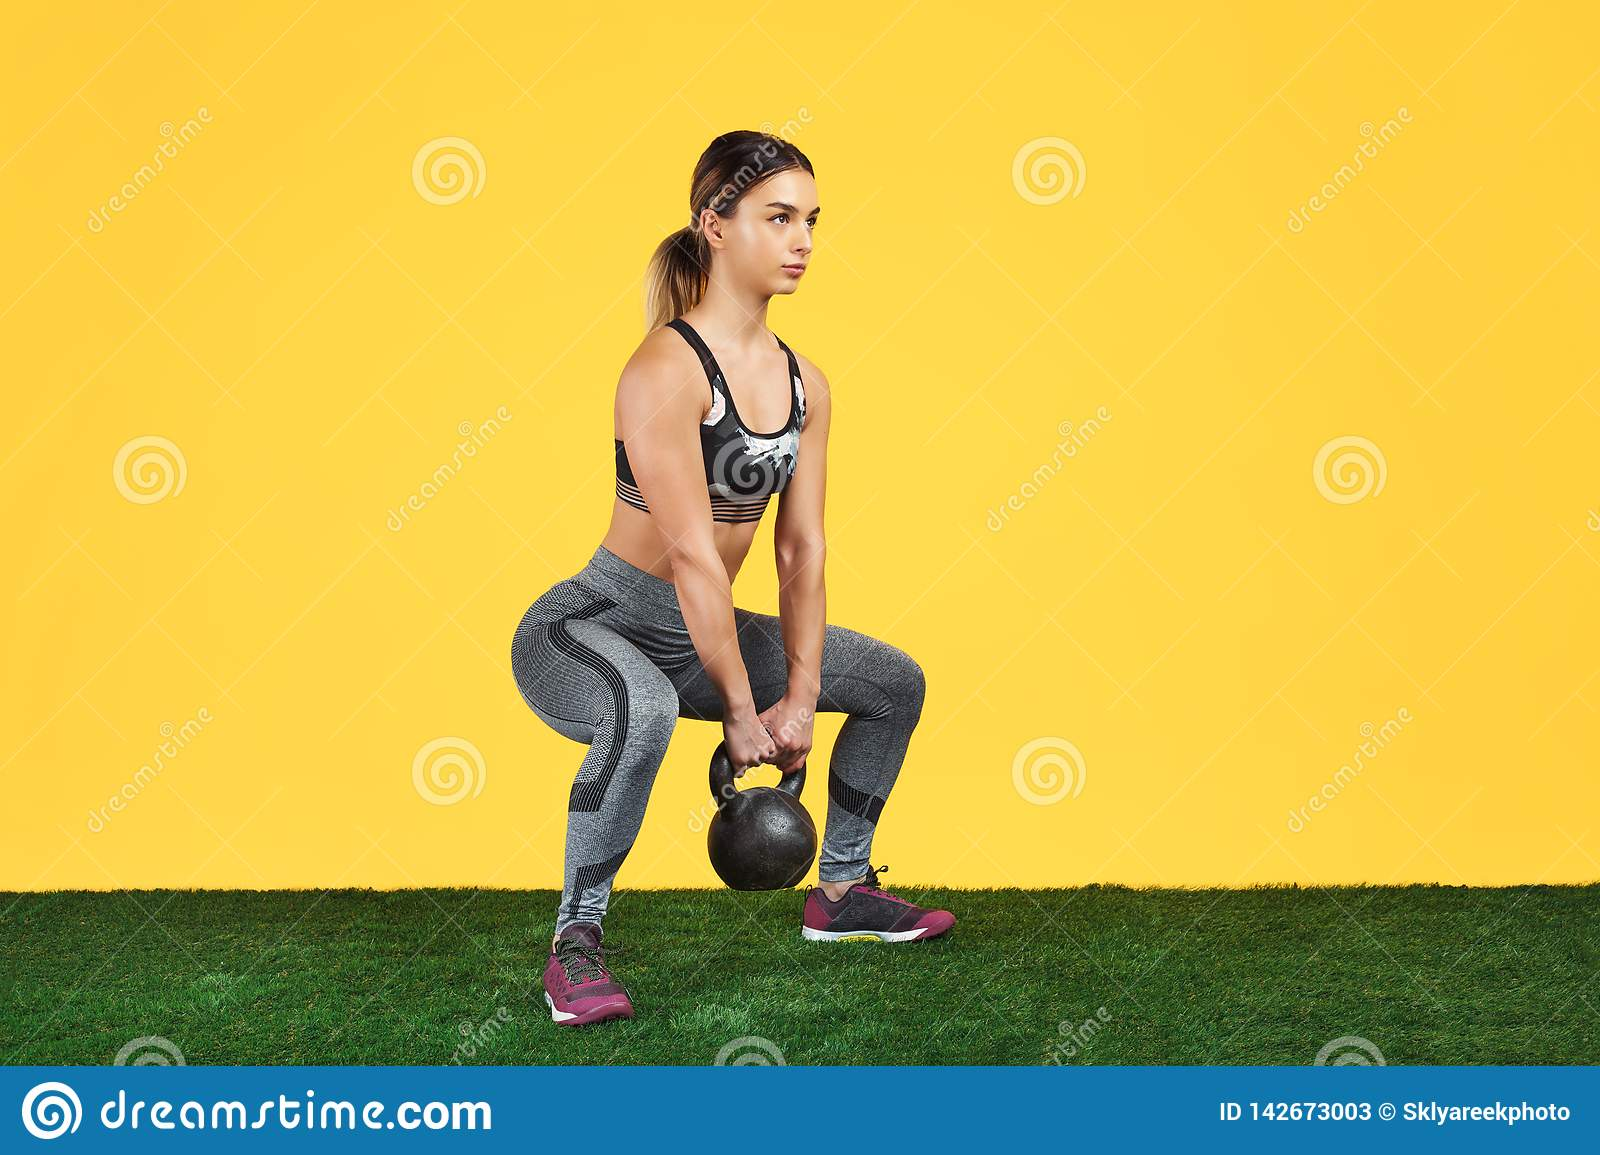 Handsome fit young woman squat with dumbbells on the green grass over yellow background.